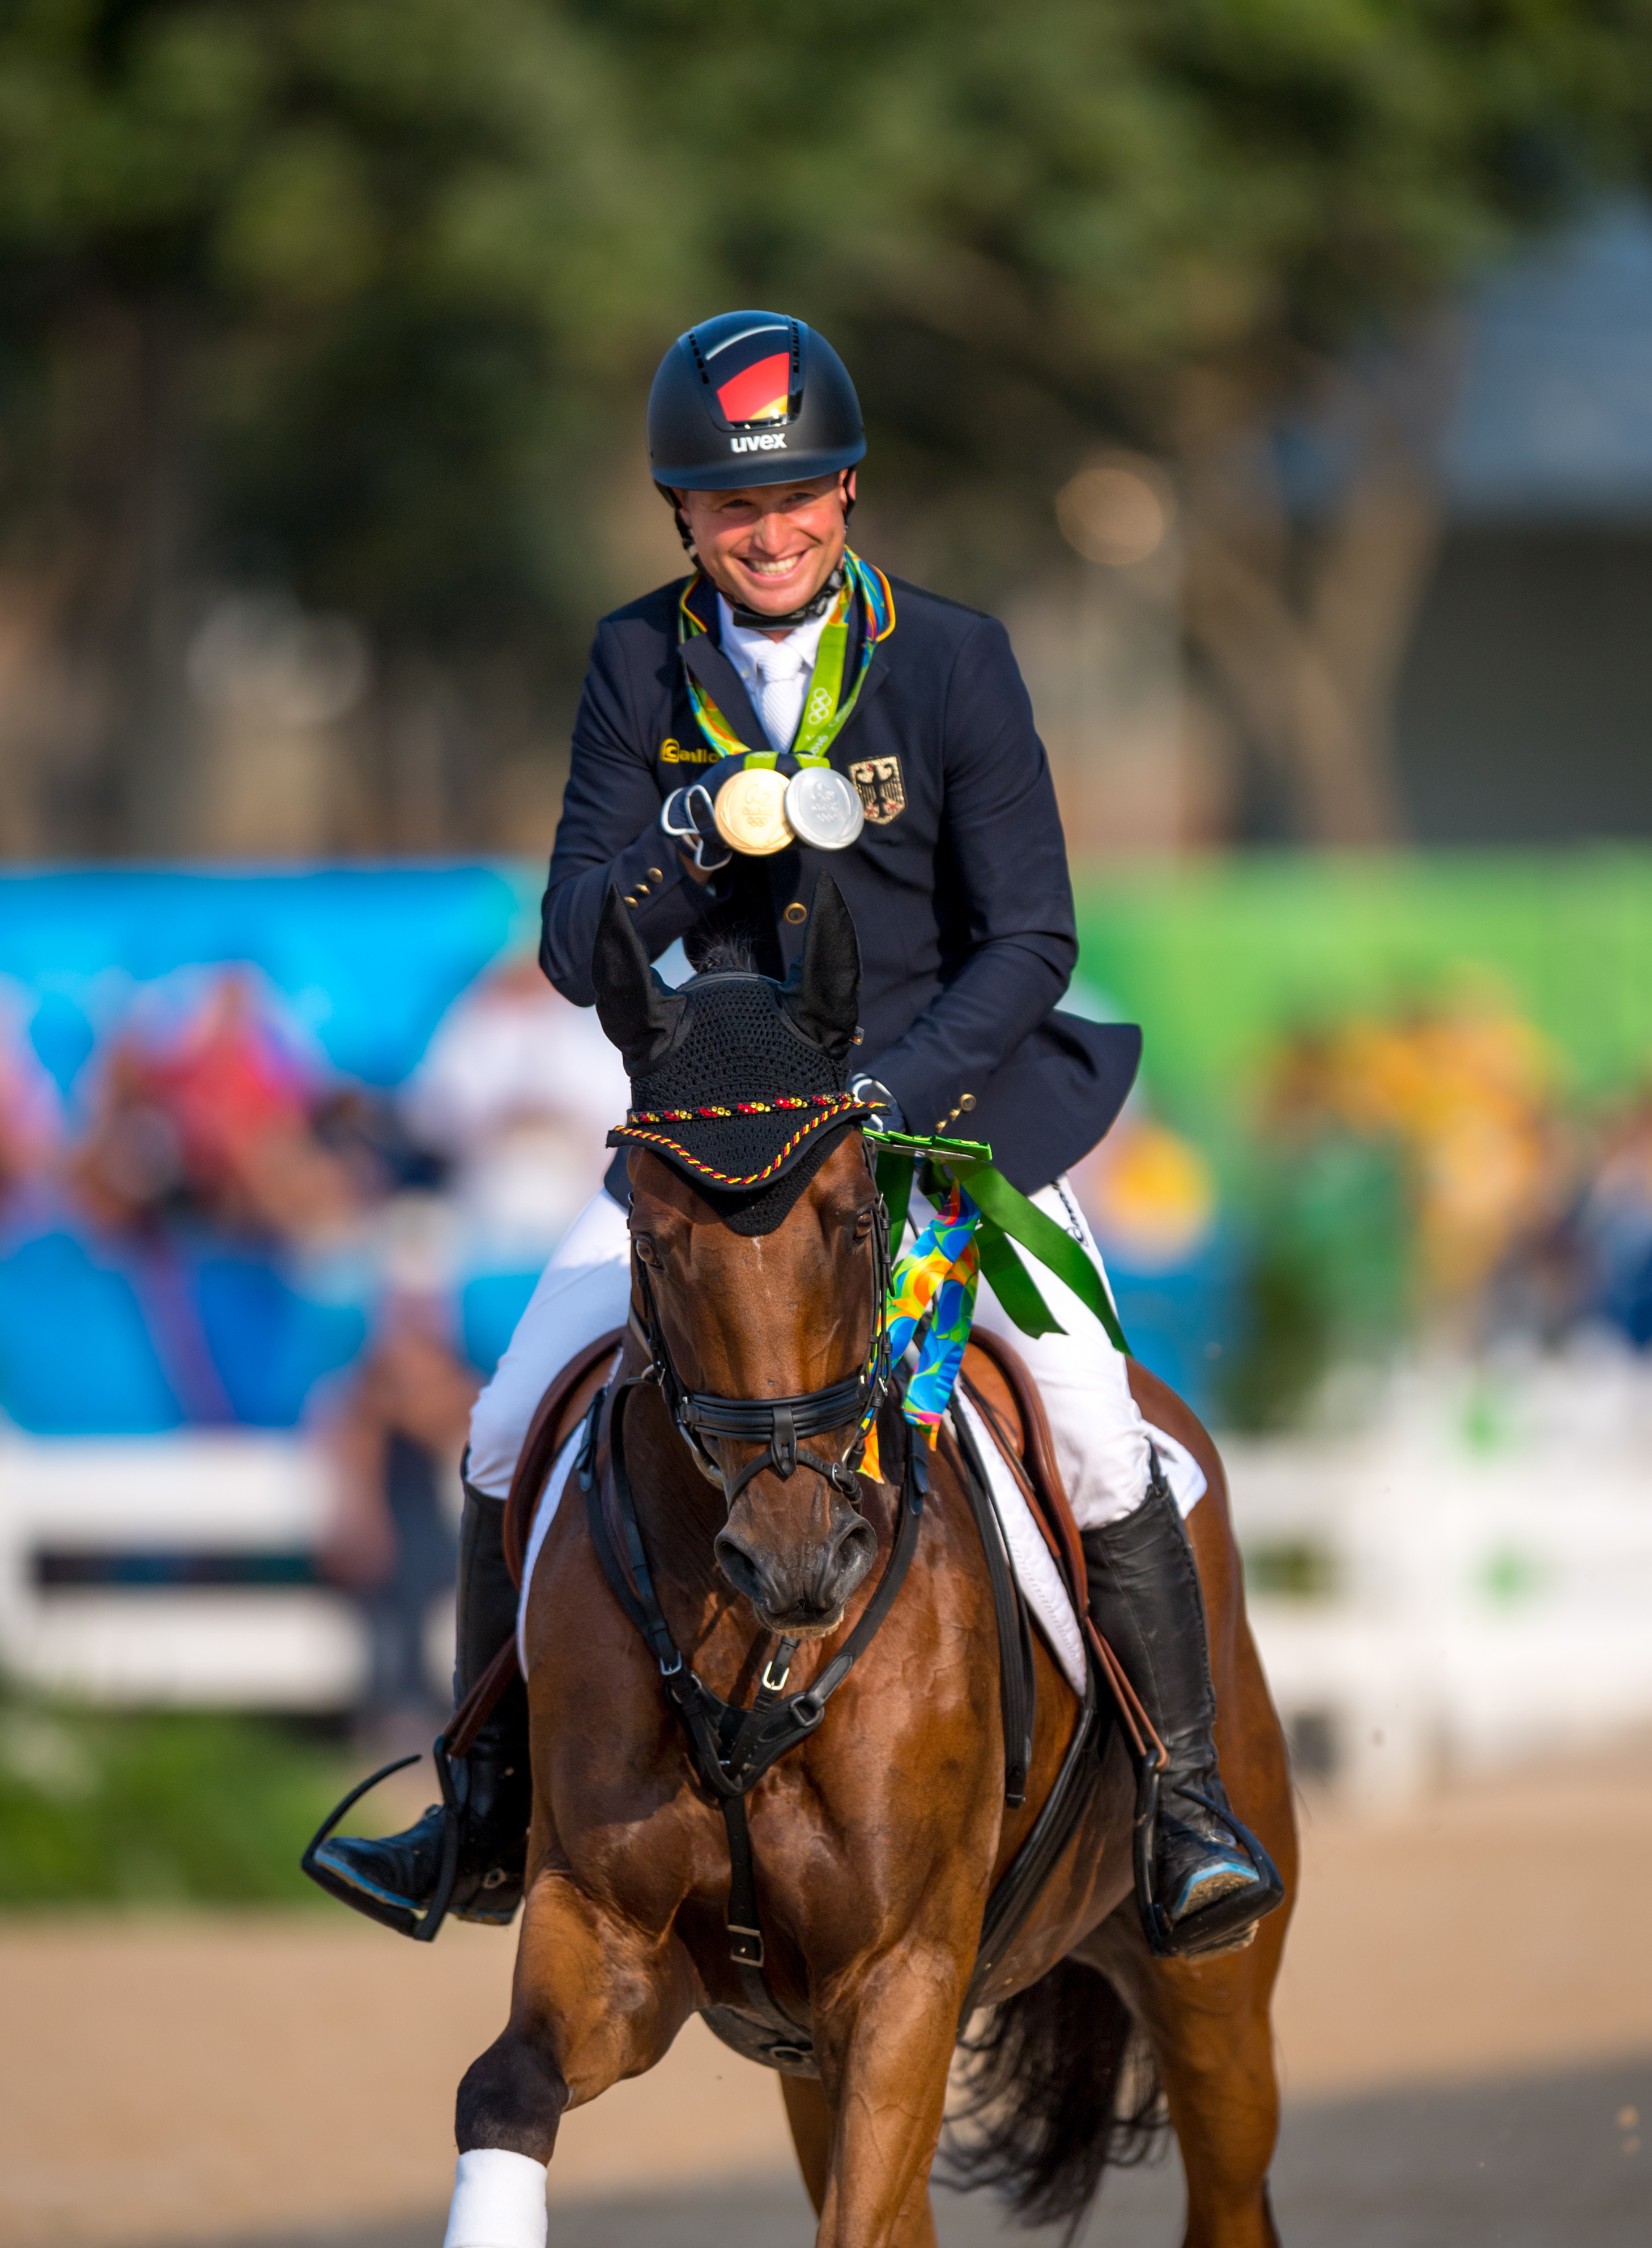 Gold Individual and Silver team Medalist, Michael Jung of Germany Pic Arnd Bronkhorst